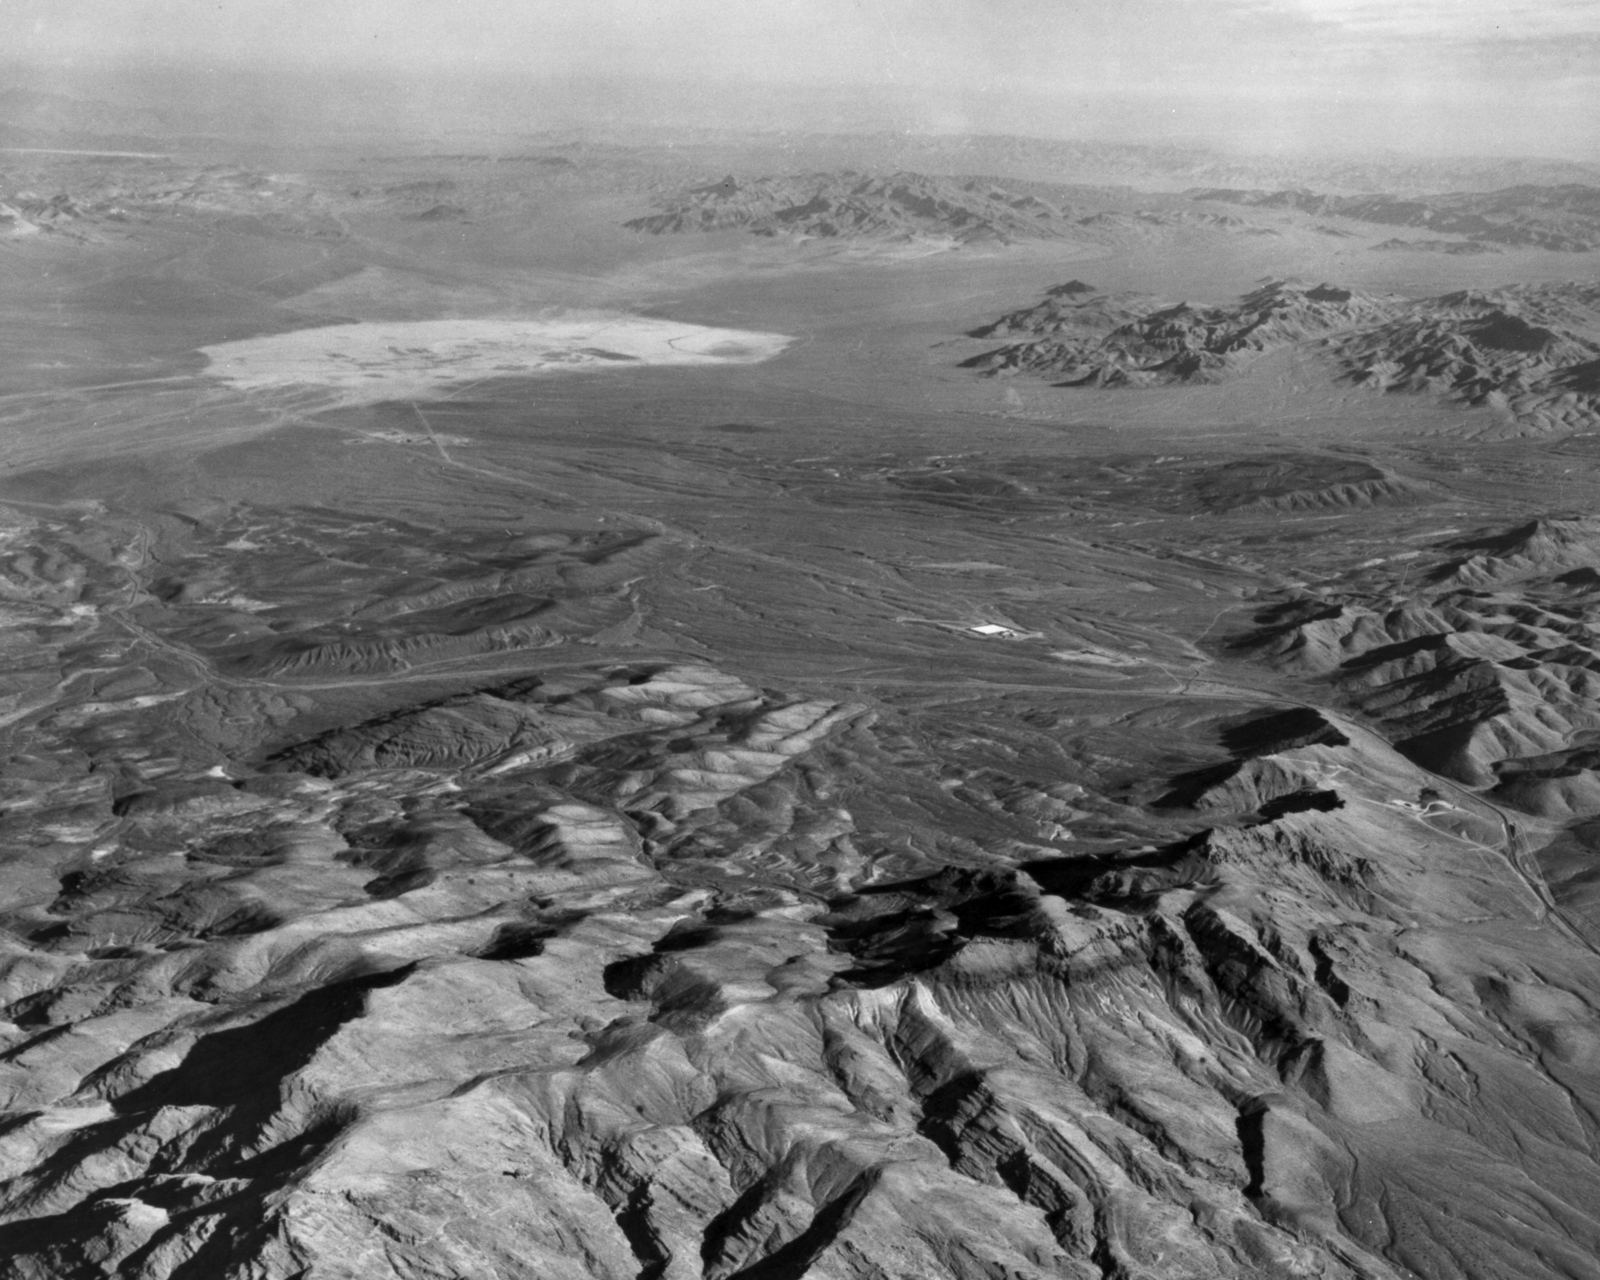 Aerial View Of The Nevada Test Site Taken From A Point Near Mercury The View Is